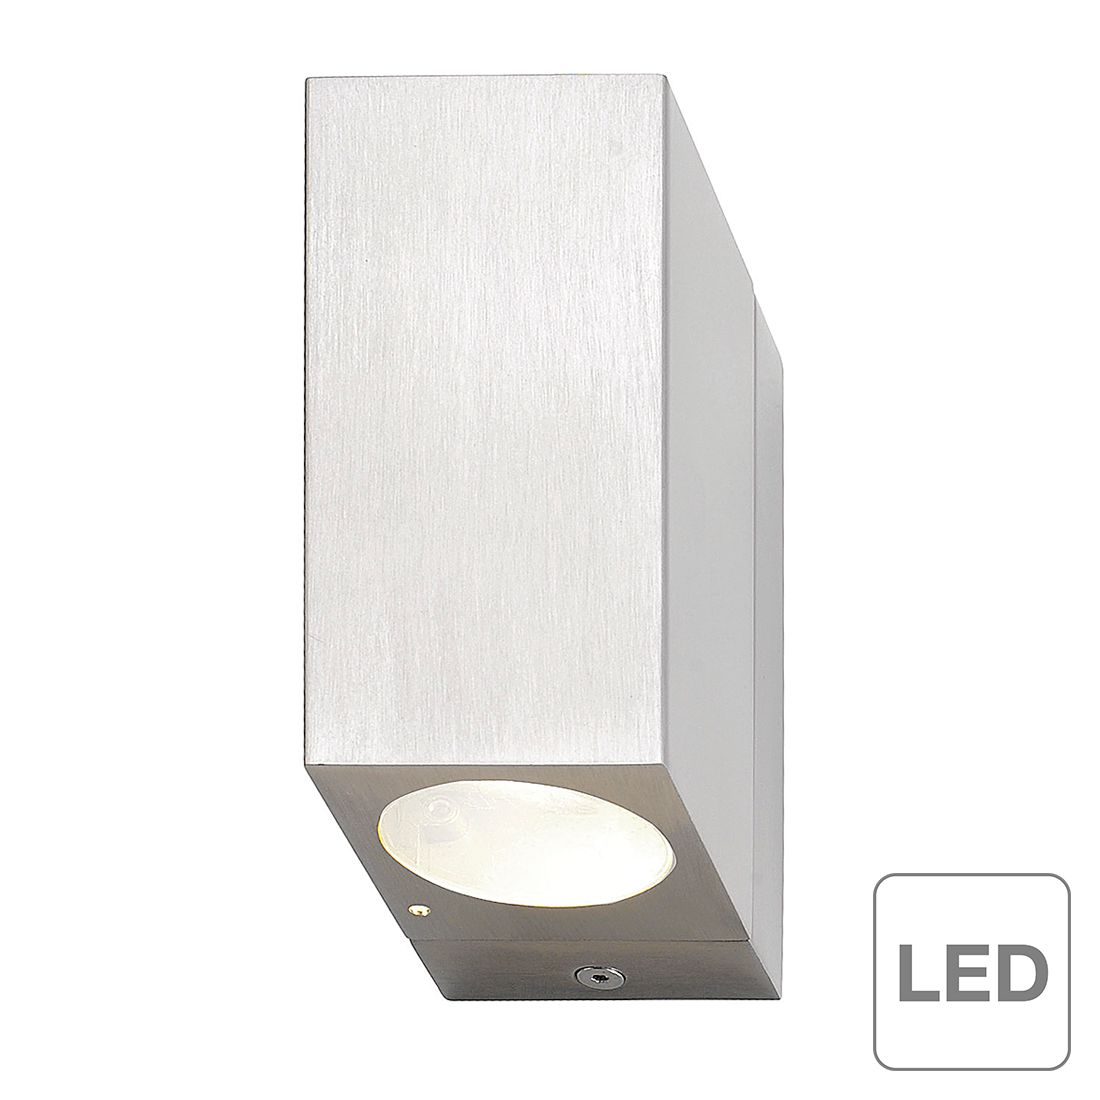 Badleuchte Led Badleuchten Led Top Flesso Ledsw With Badleuchten Led